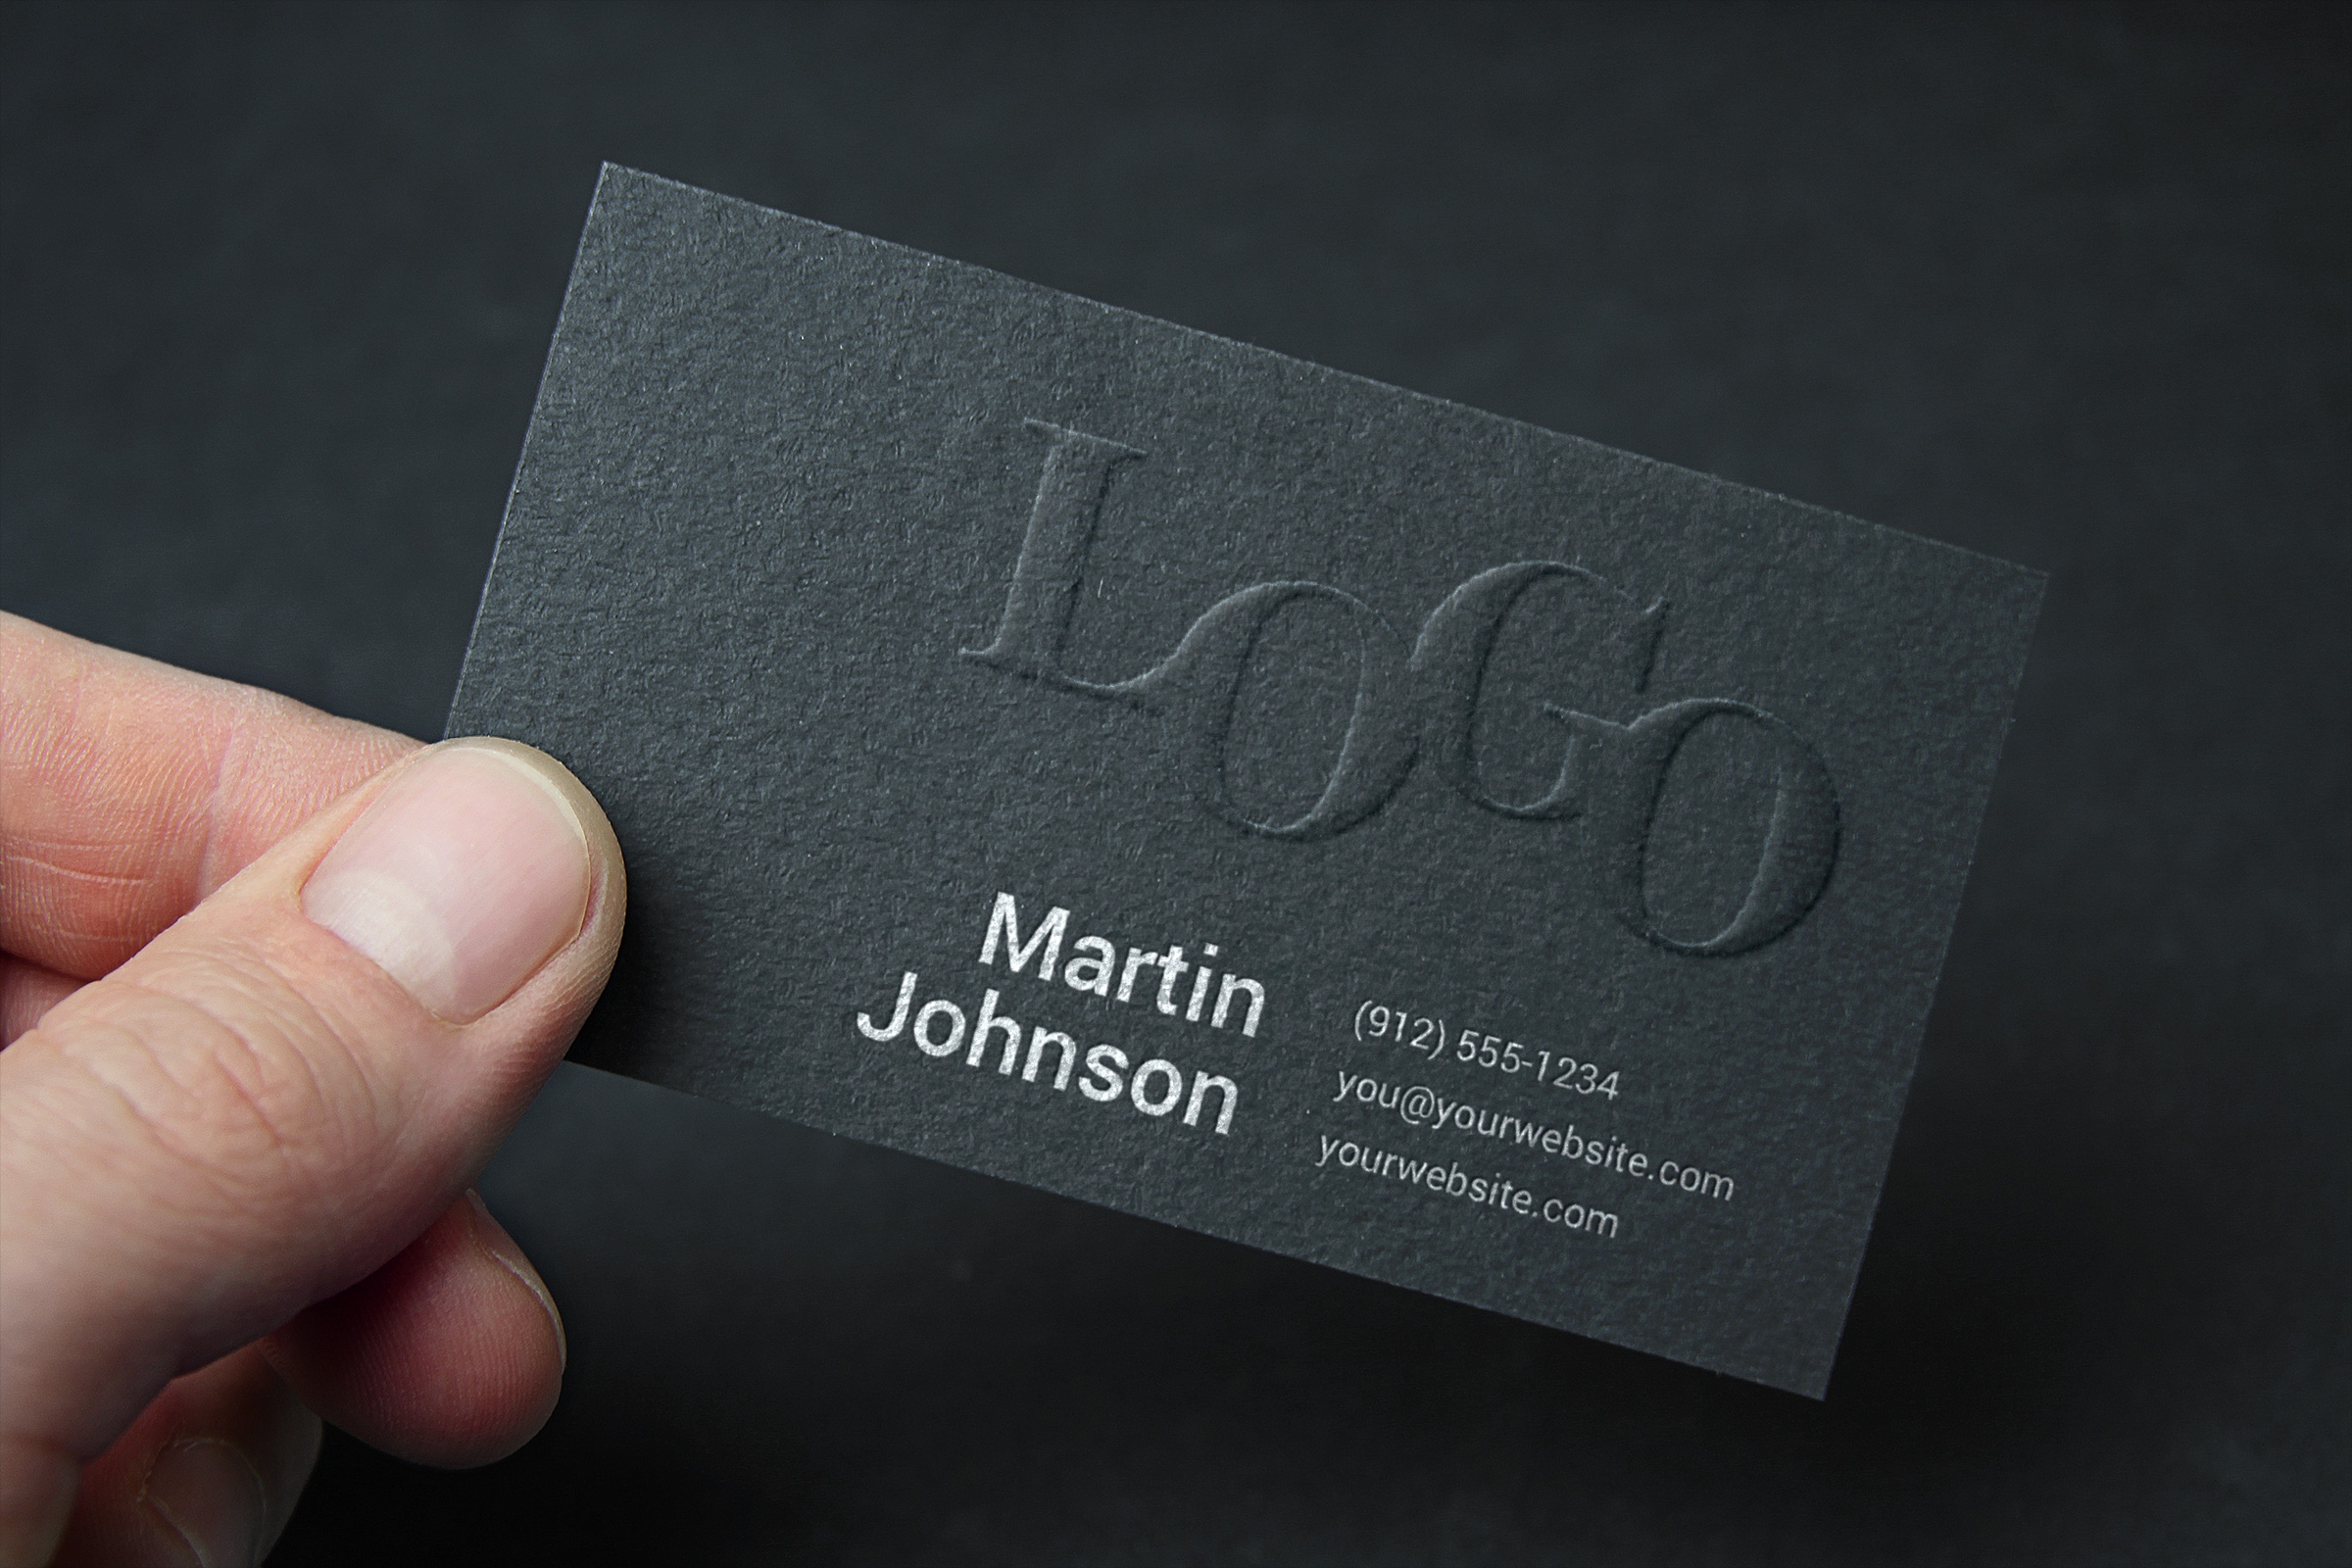 Cheap Business Cards Melbourne, Sydney, Perth, Brisbane, Adelaide